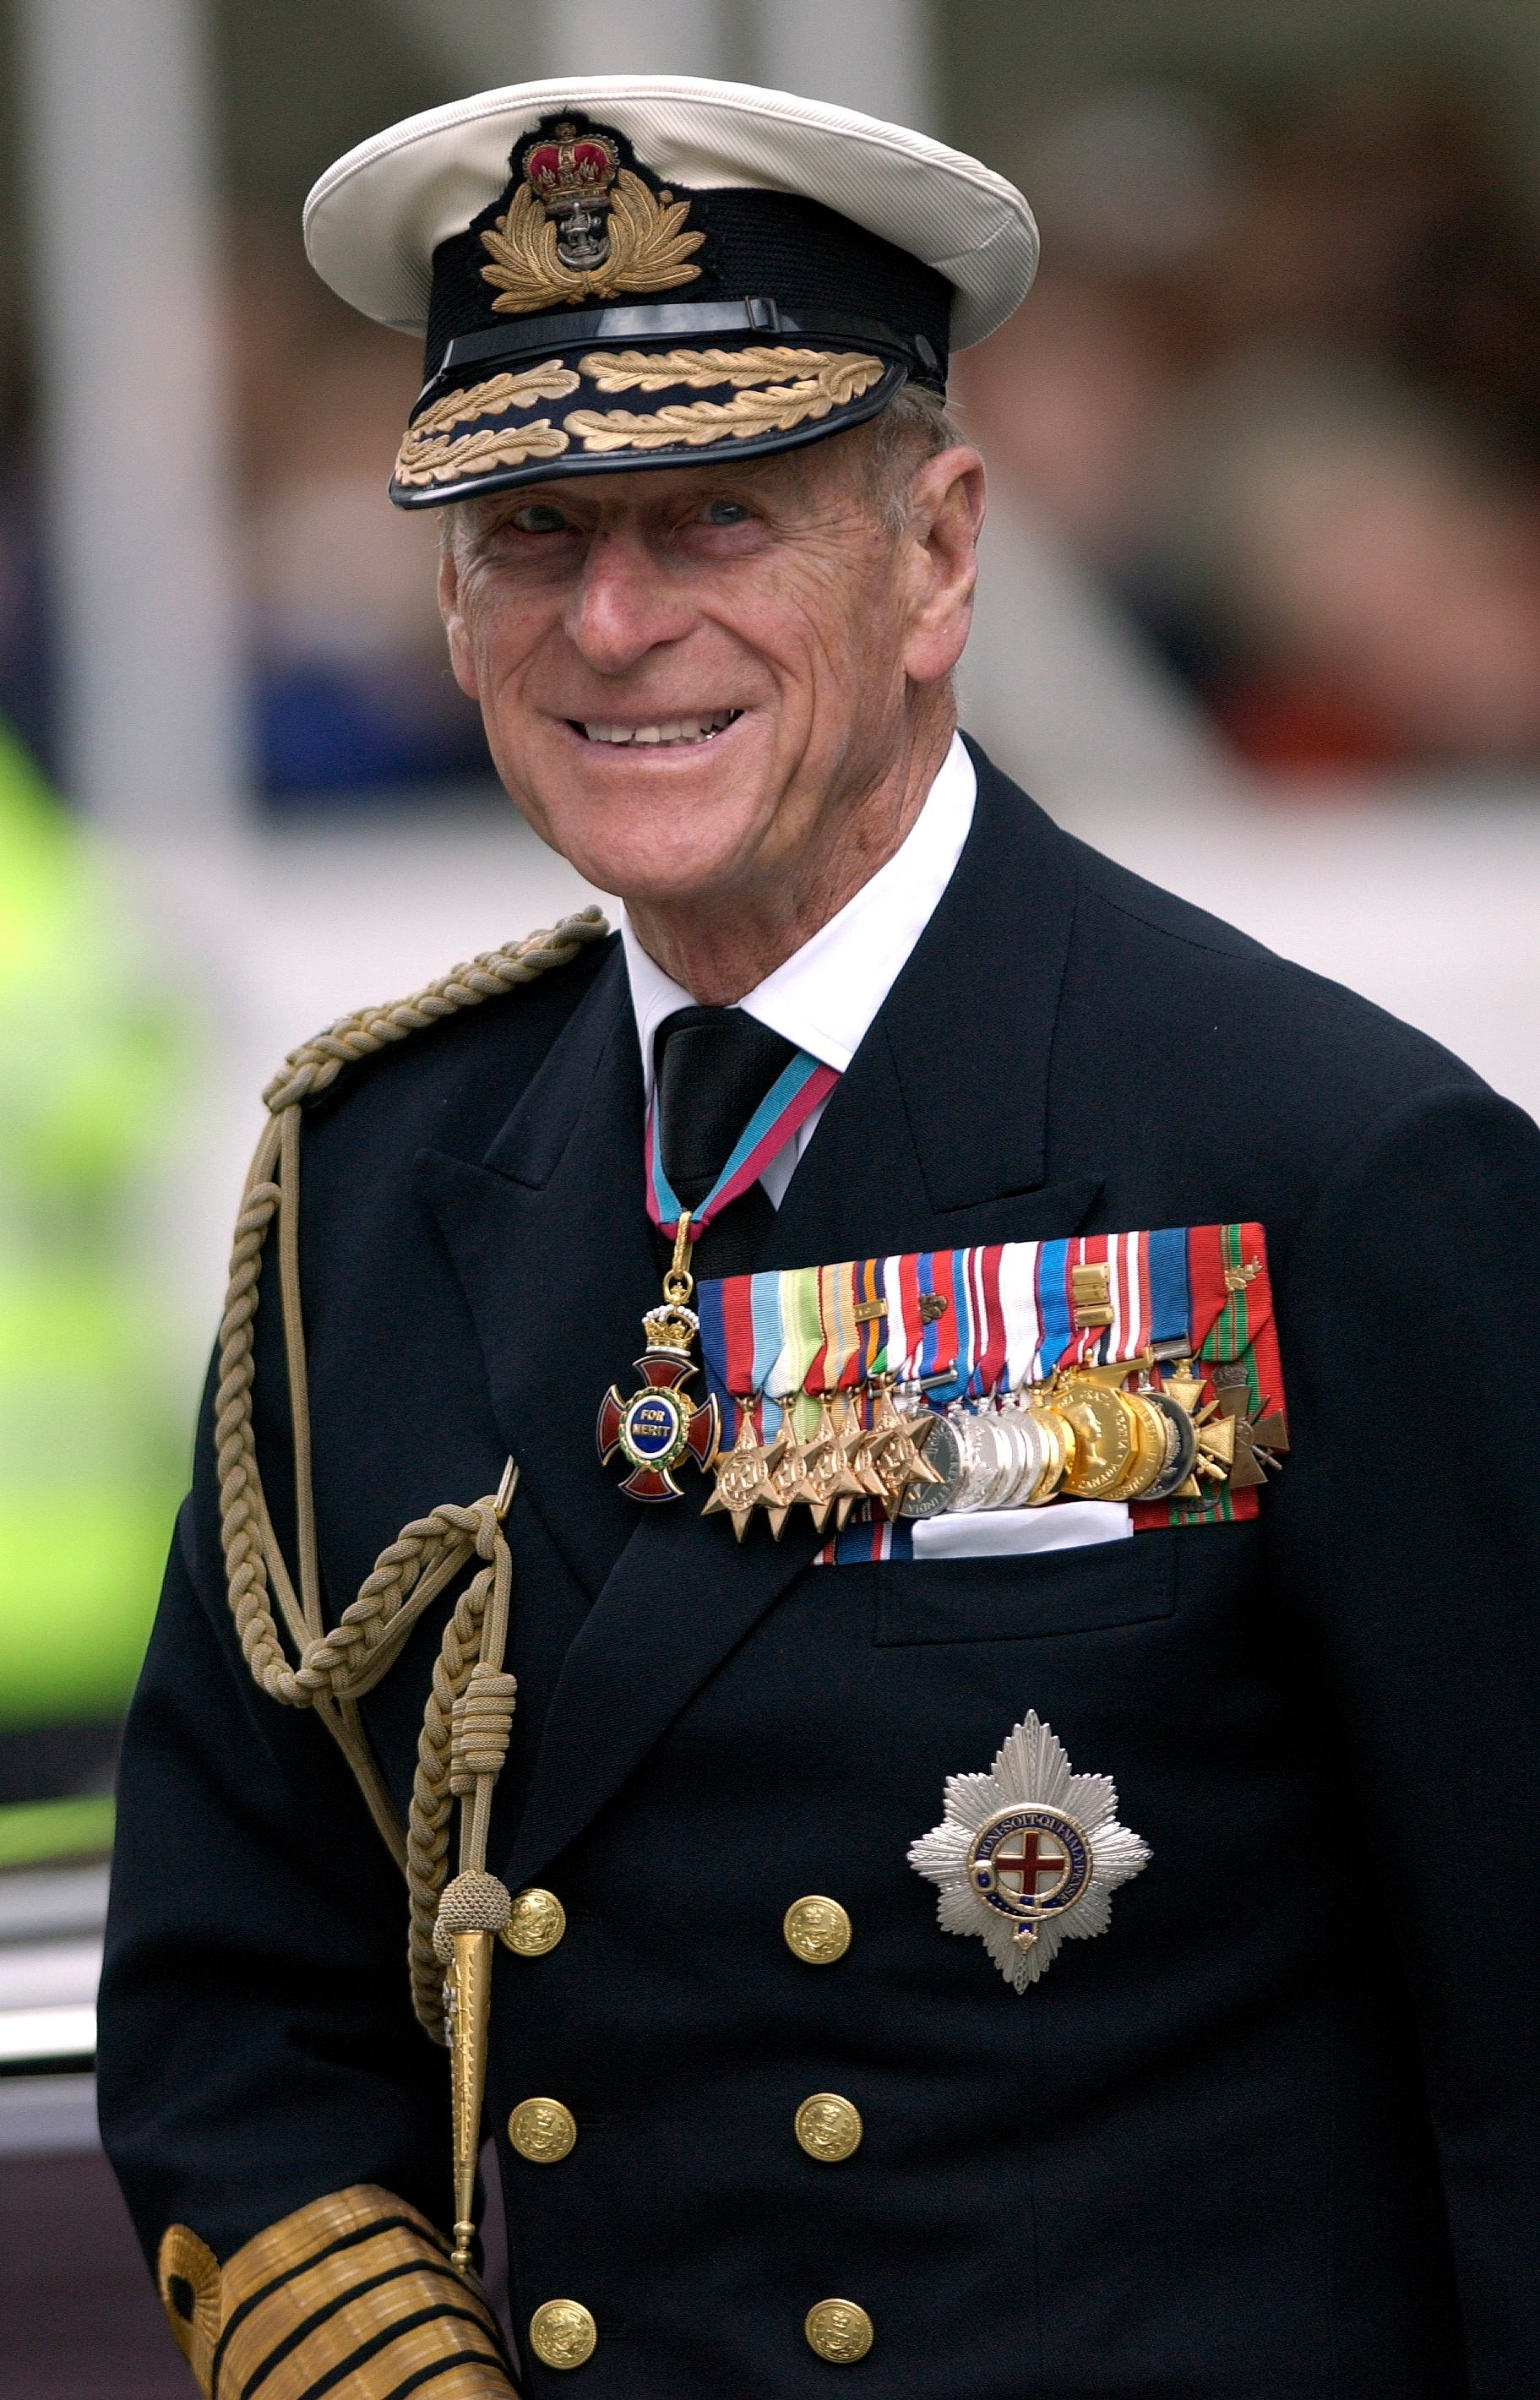 Prince Philip photographed in his military uniform on October 10, 2003.   Photo: Getty Images